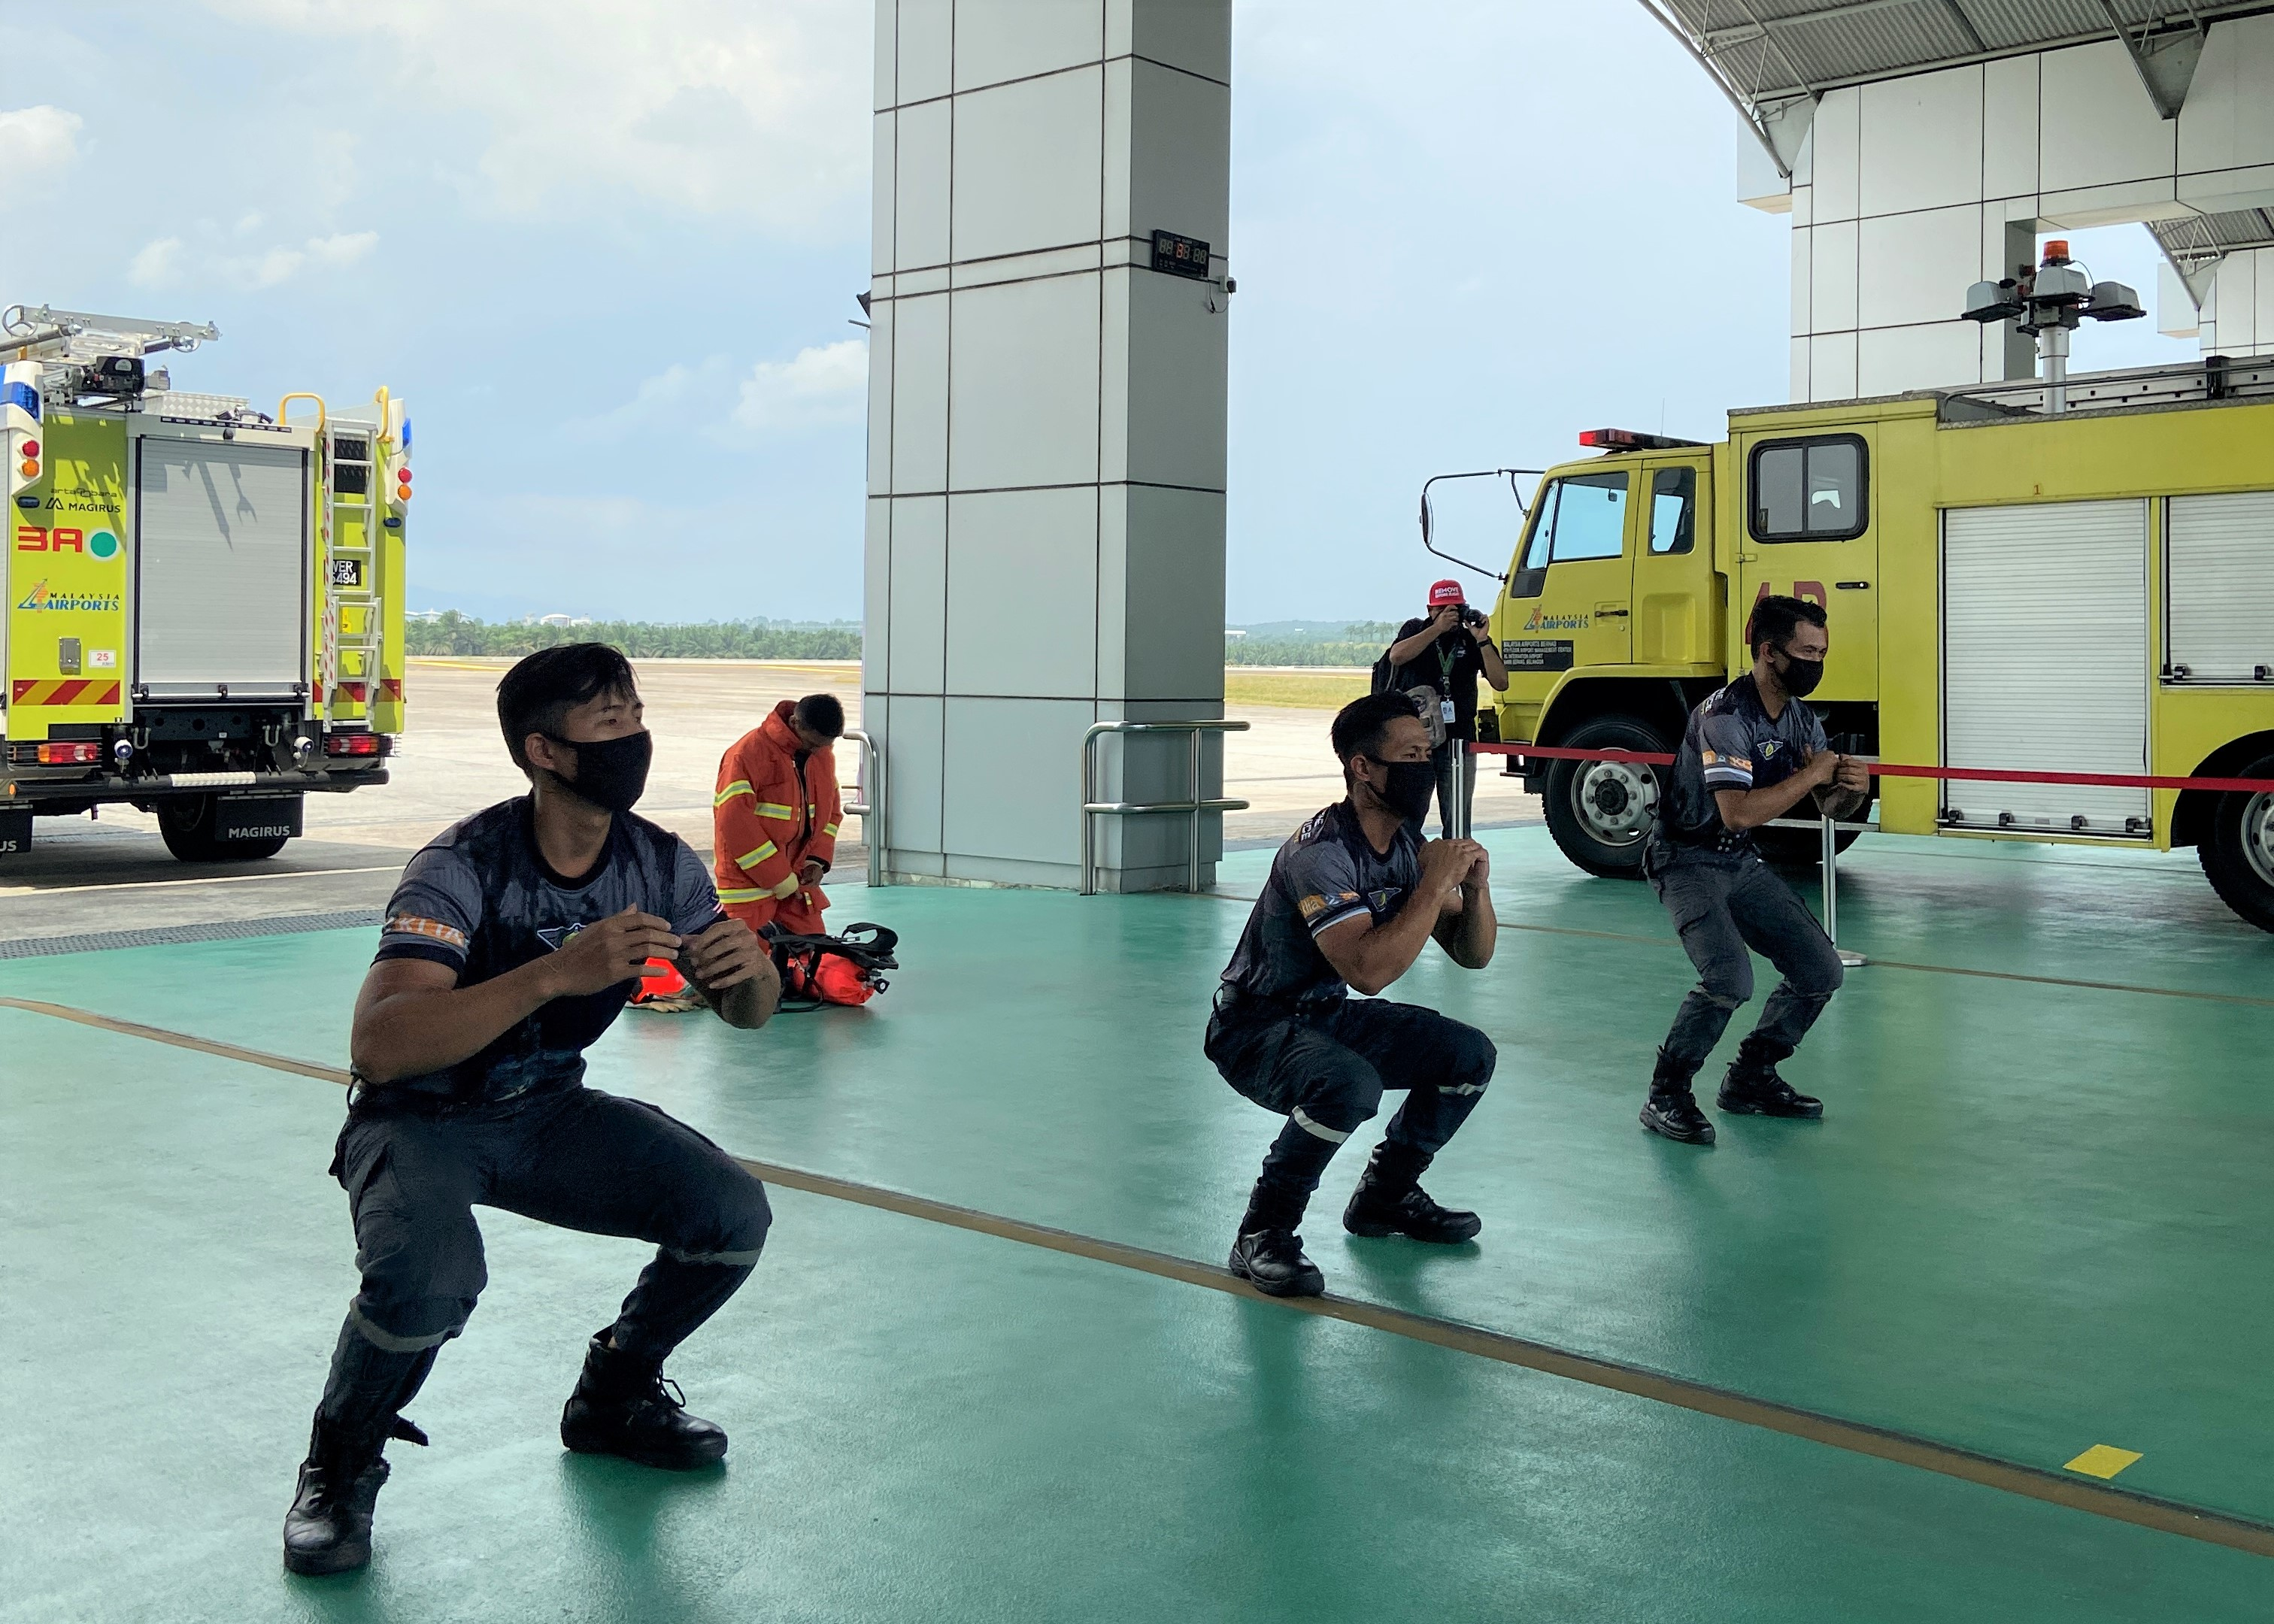 A unique welcome performance by the firefighters of Airport Fire Rescue Service (AFRS).